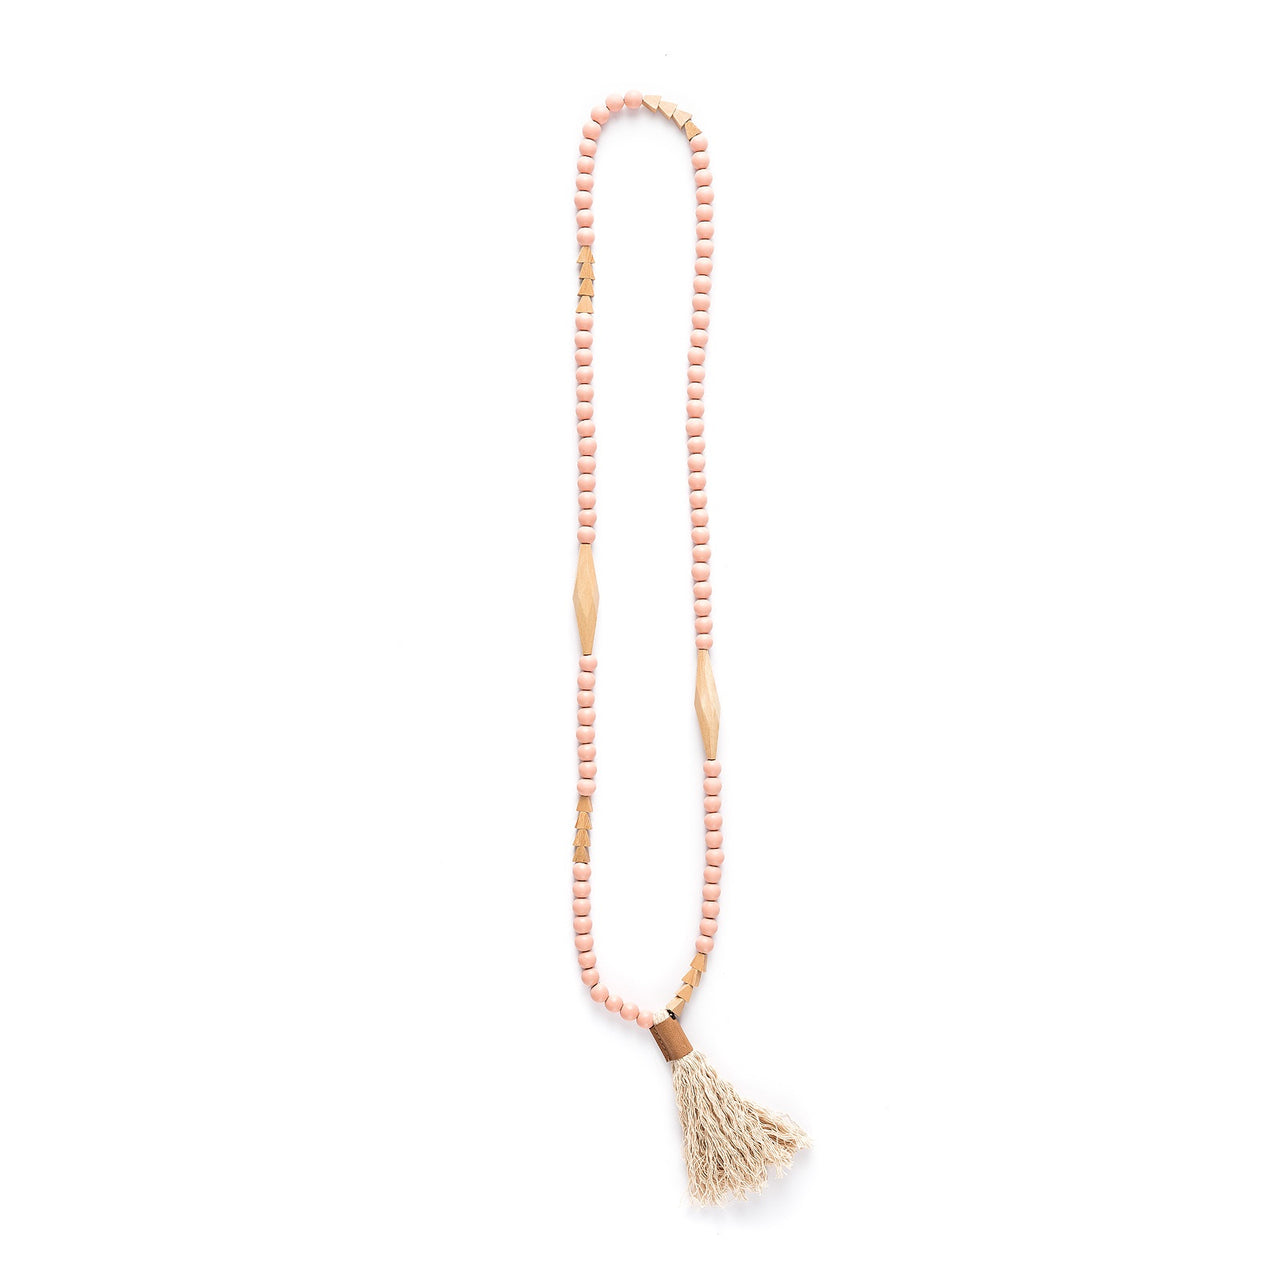 Tent Beads Necklace - Blush ~ WAS $35.95 ~ NOW $17.95